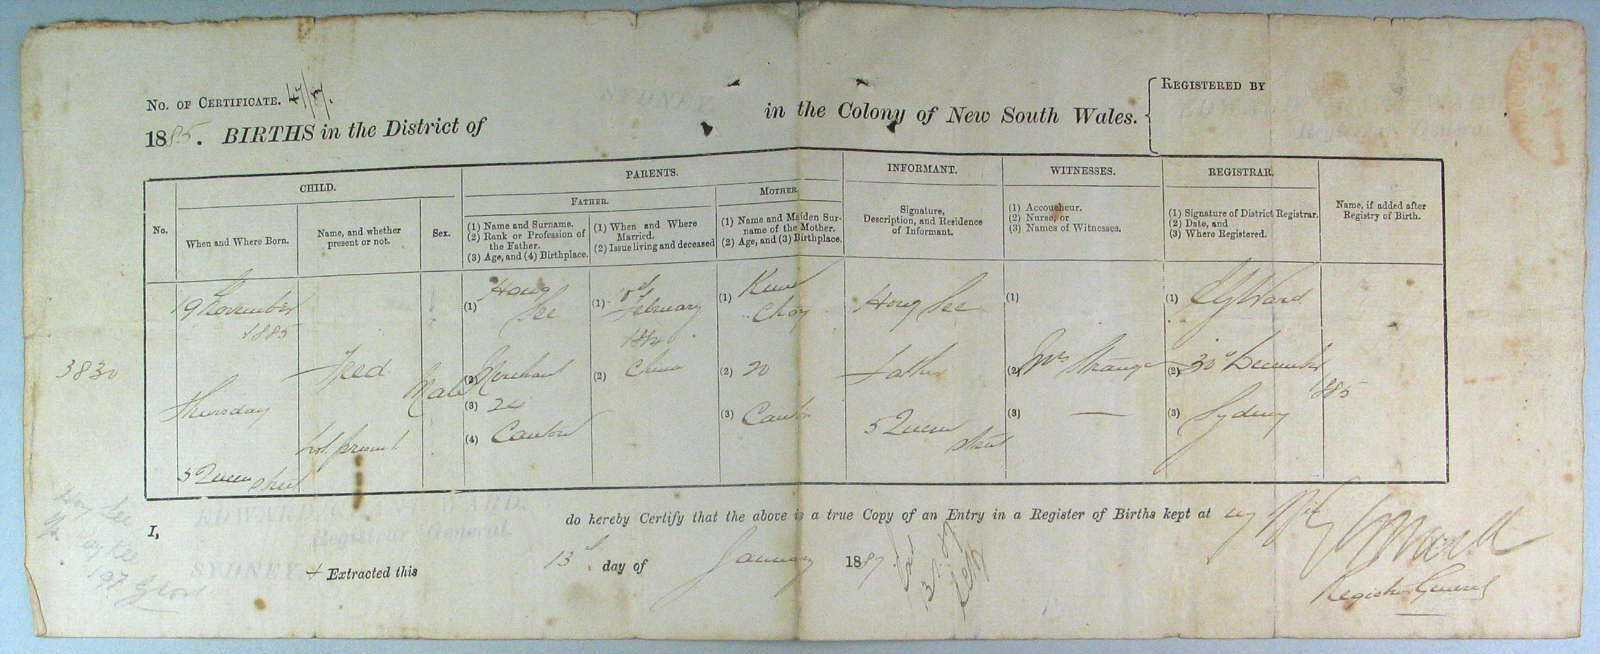 sydney birth records - photo#6